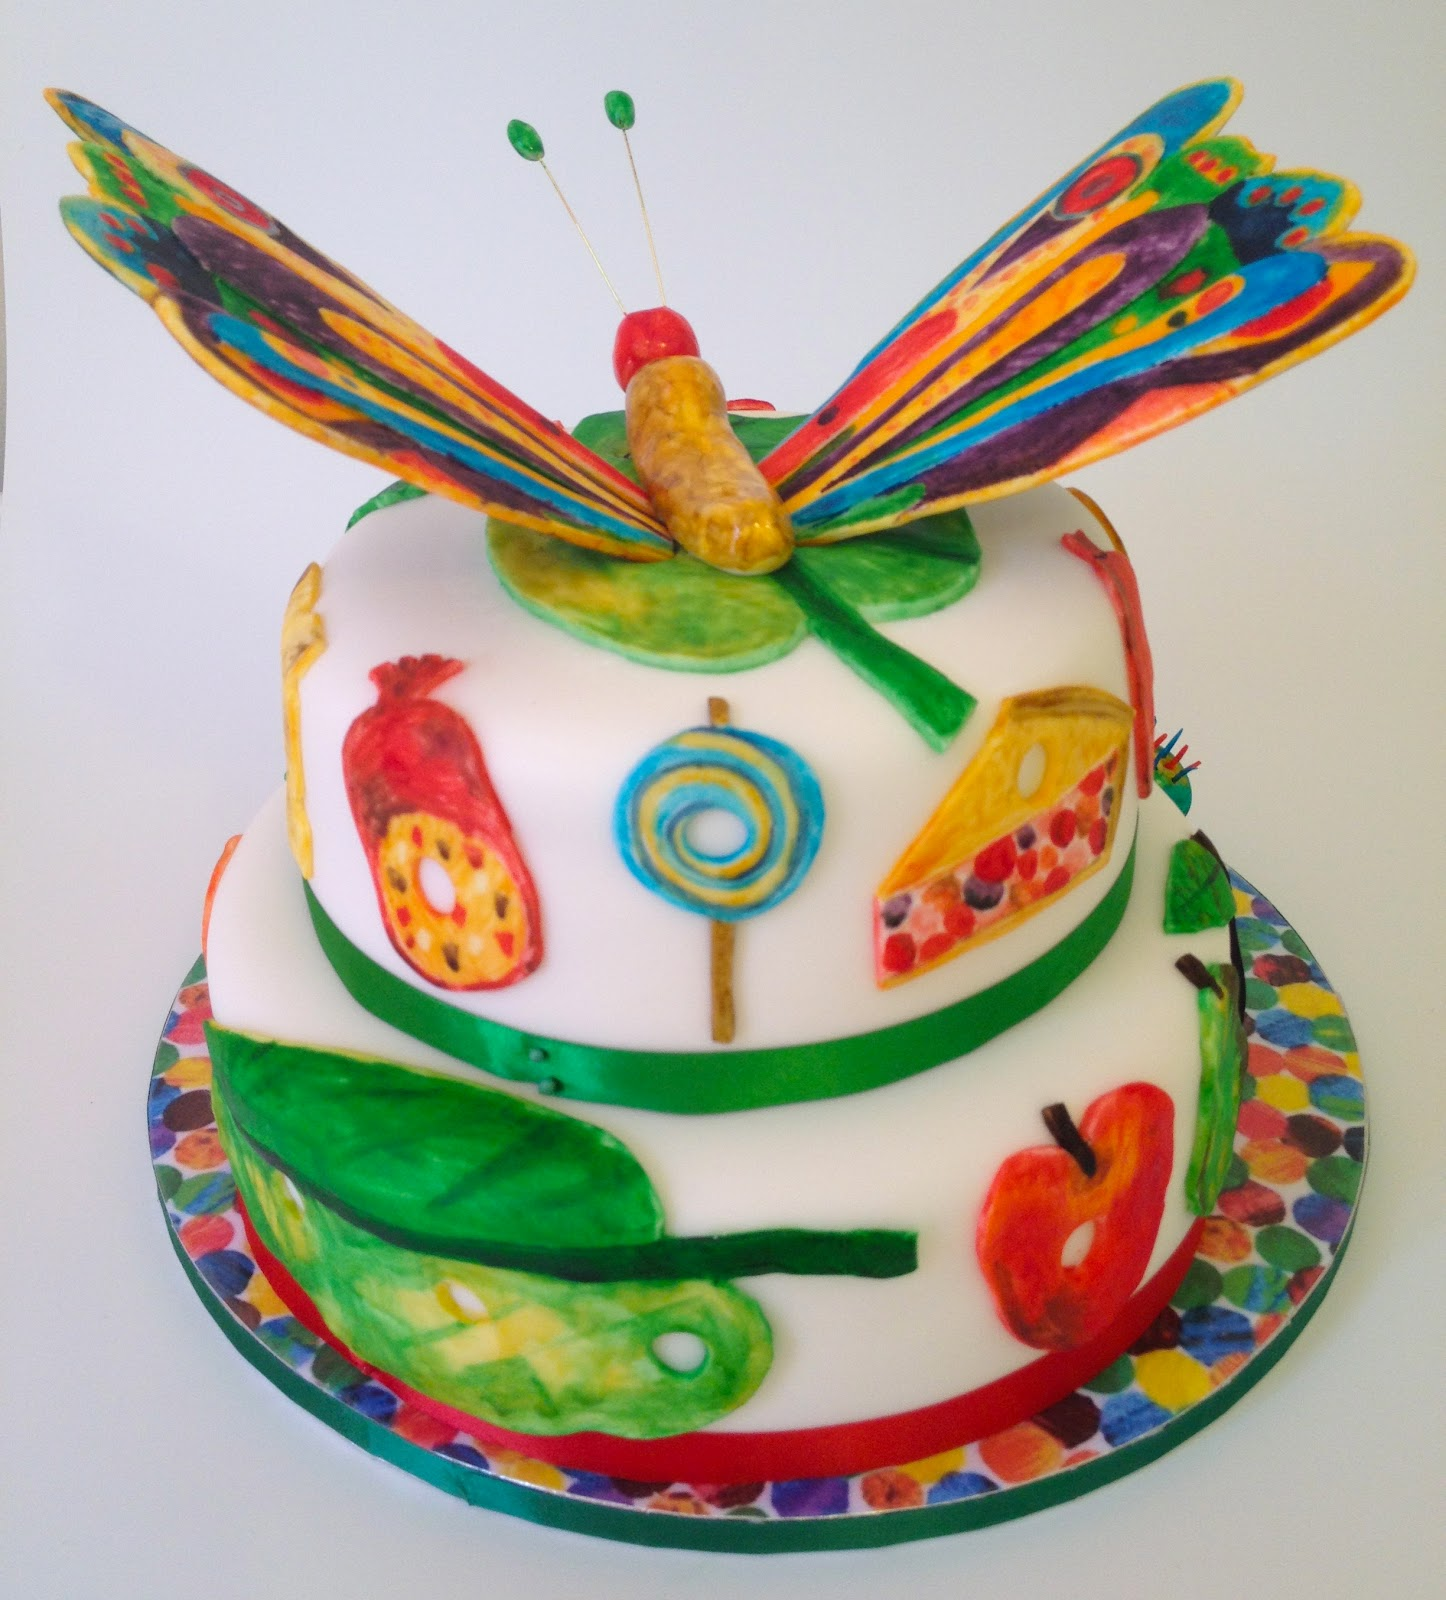 Elaines Sweet Life The Very Hungry Caterpillar Cake